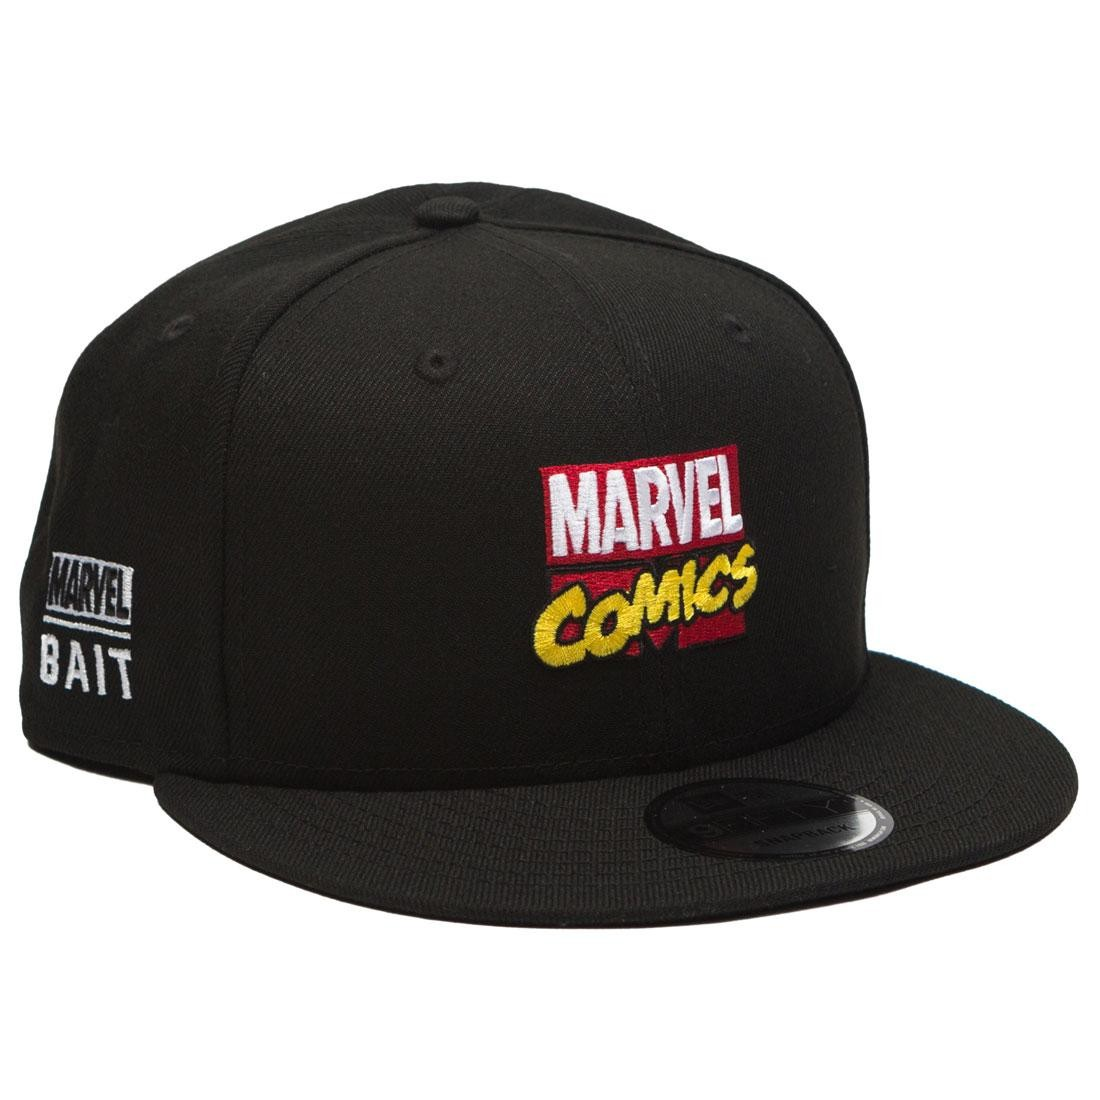 BAIT x Marvel x New Era 9Fifty Marvel Comics Black Snapback Cap (black)